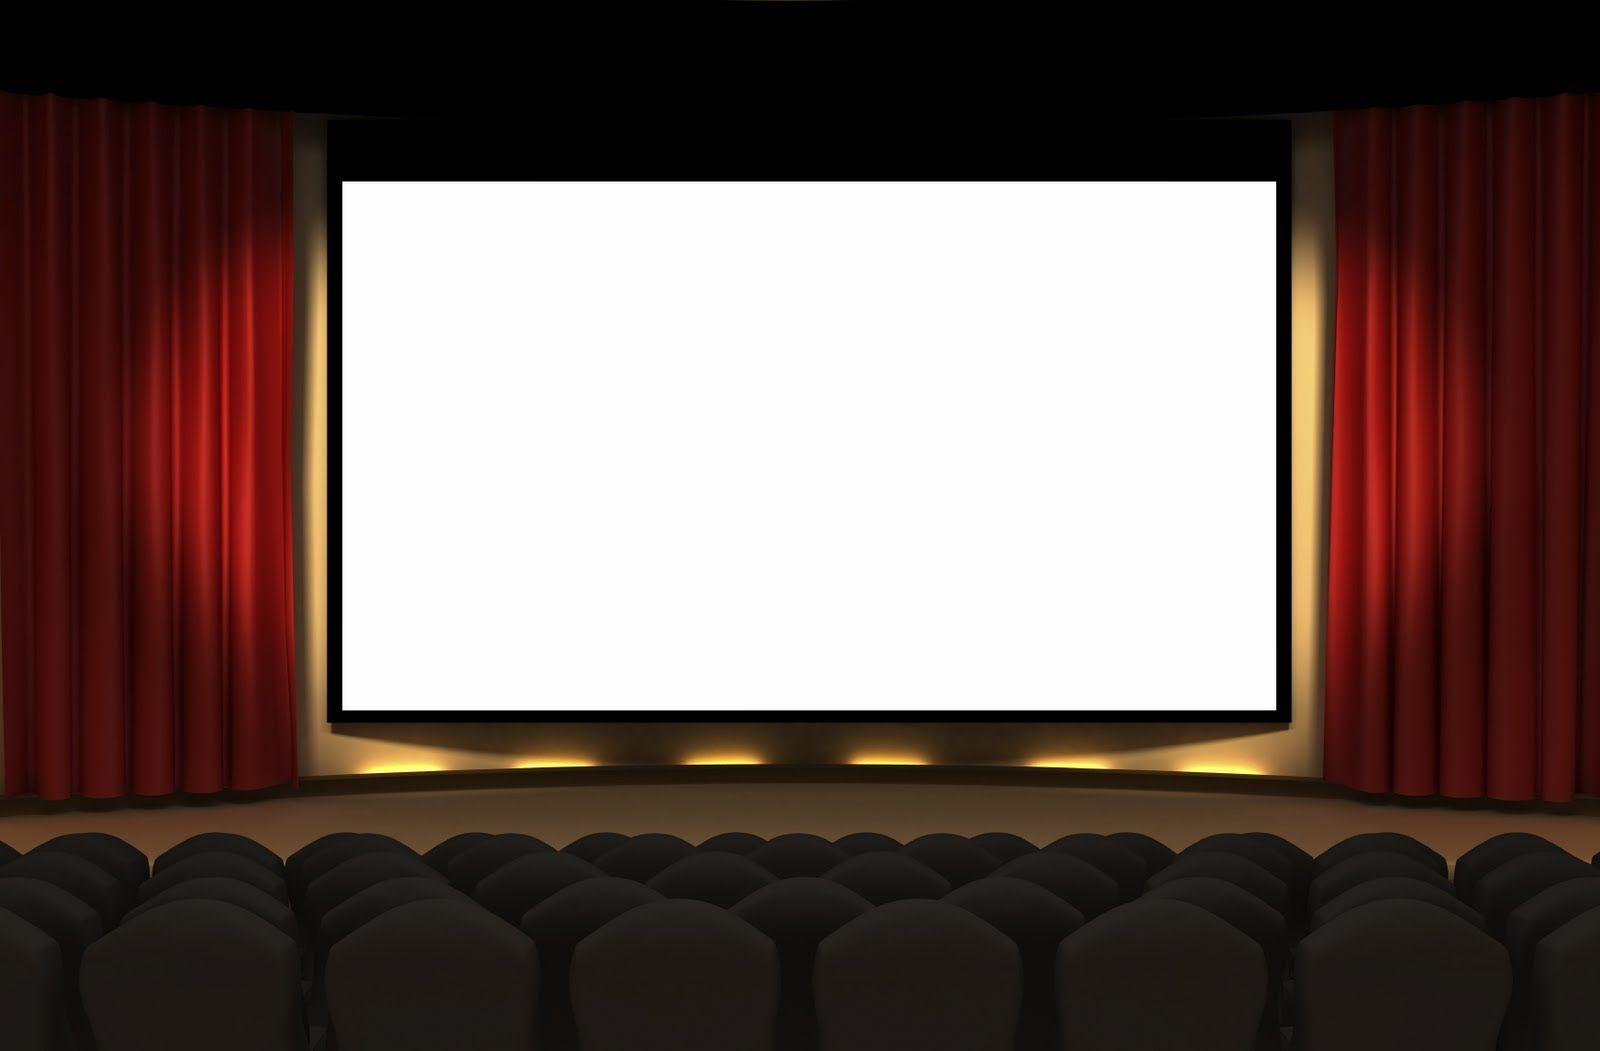 Movie theater wallpaper gallery - Home theater wallpaper ...